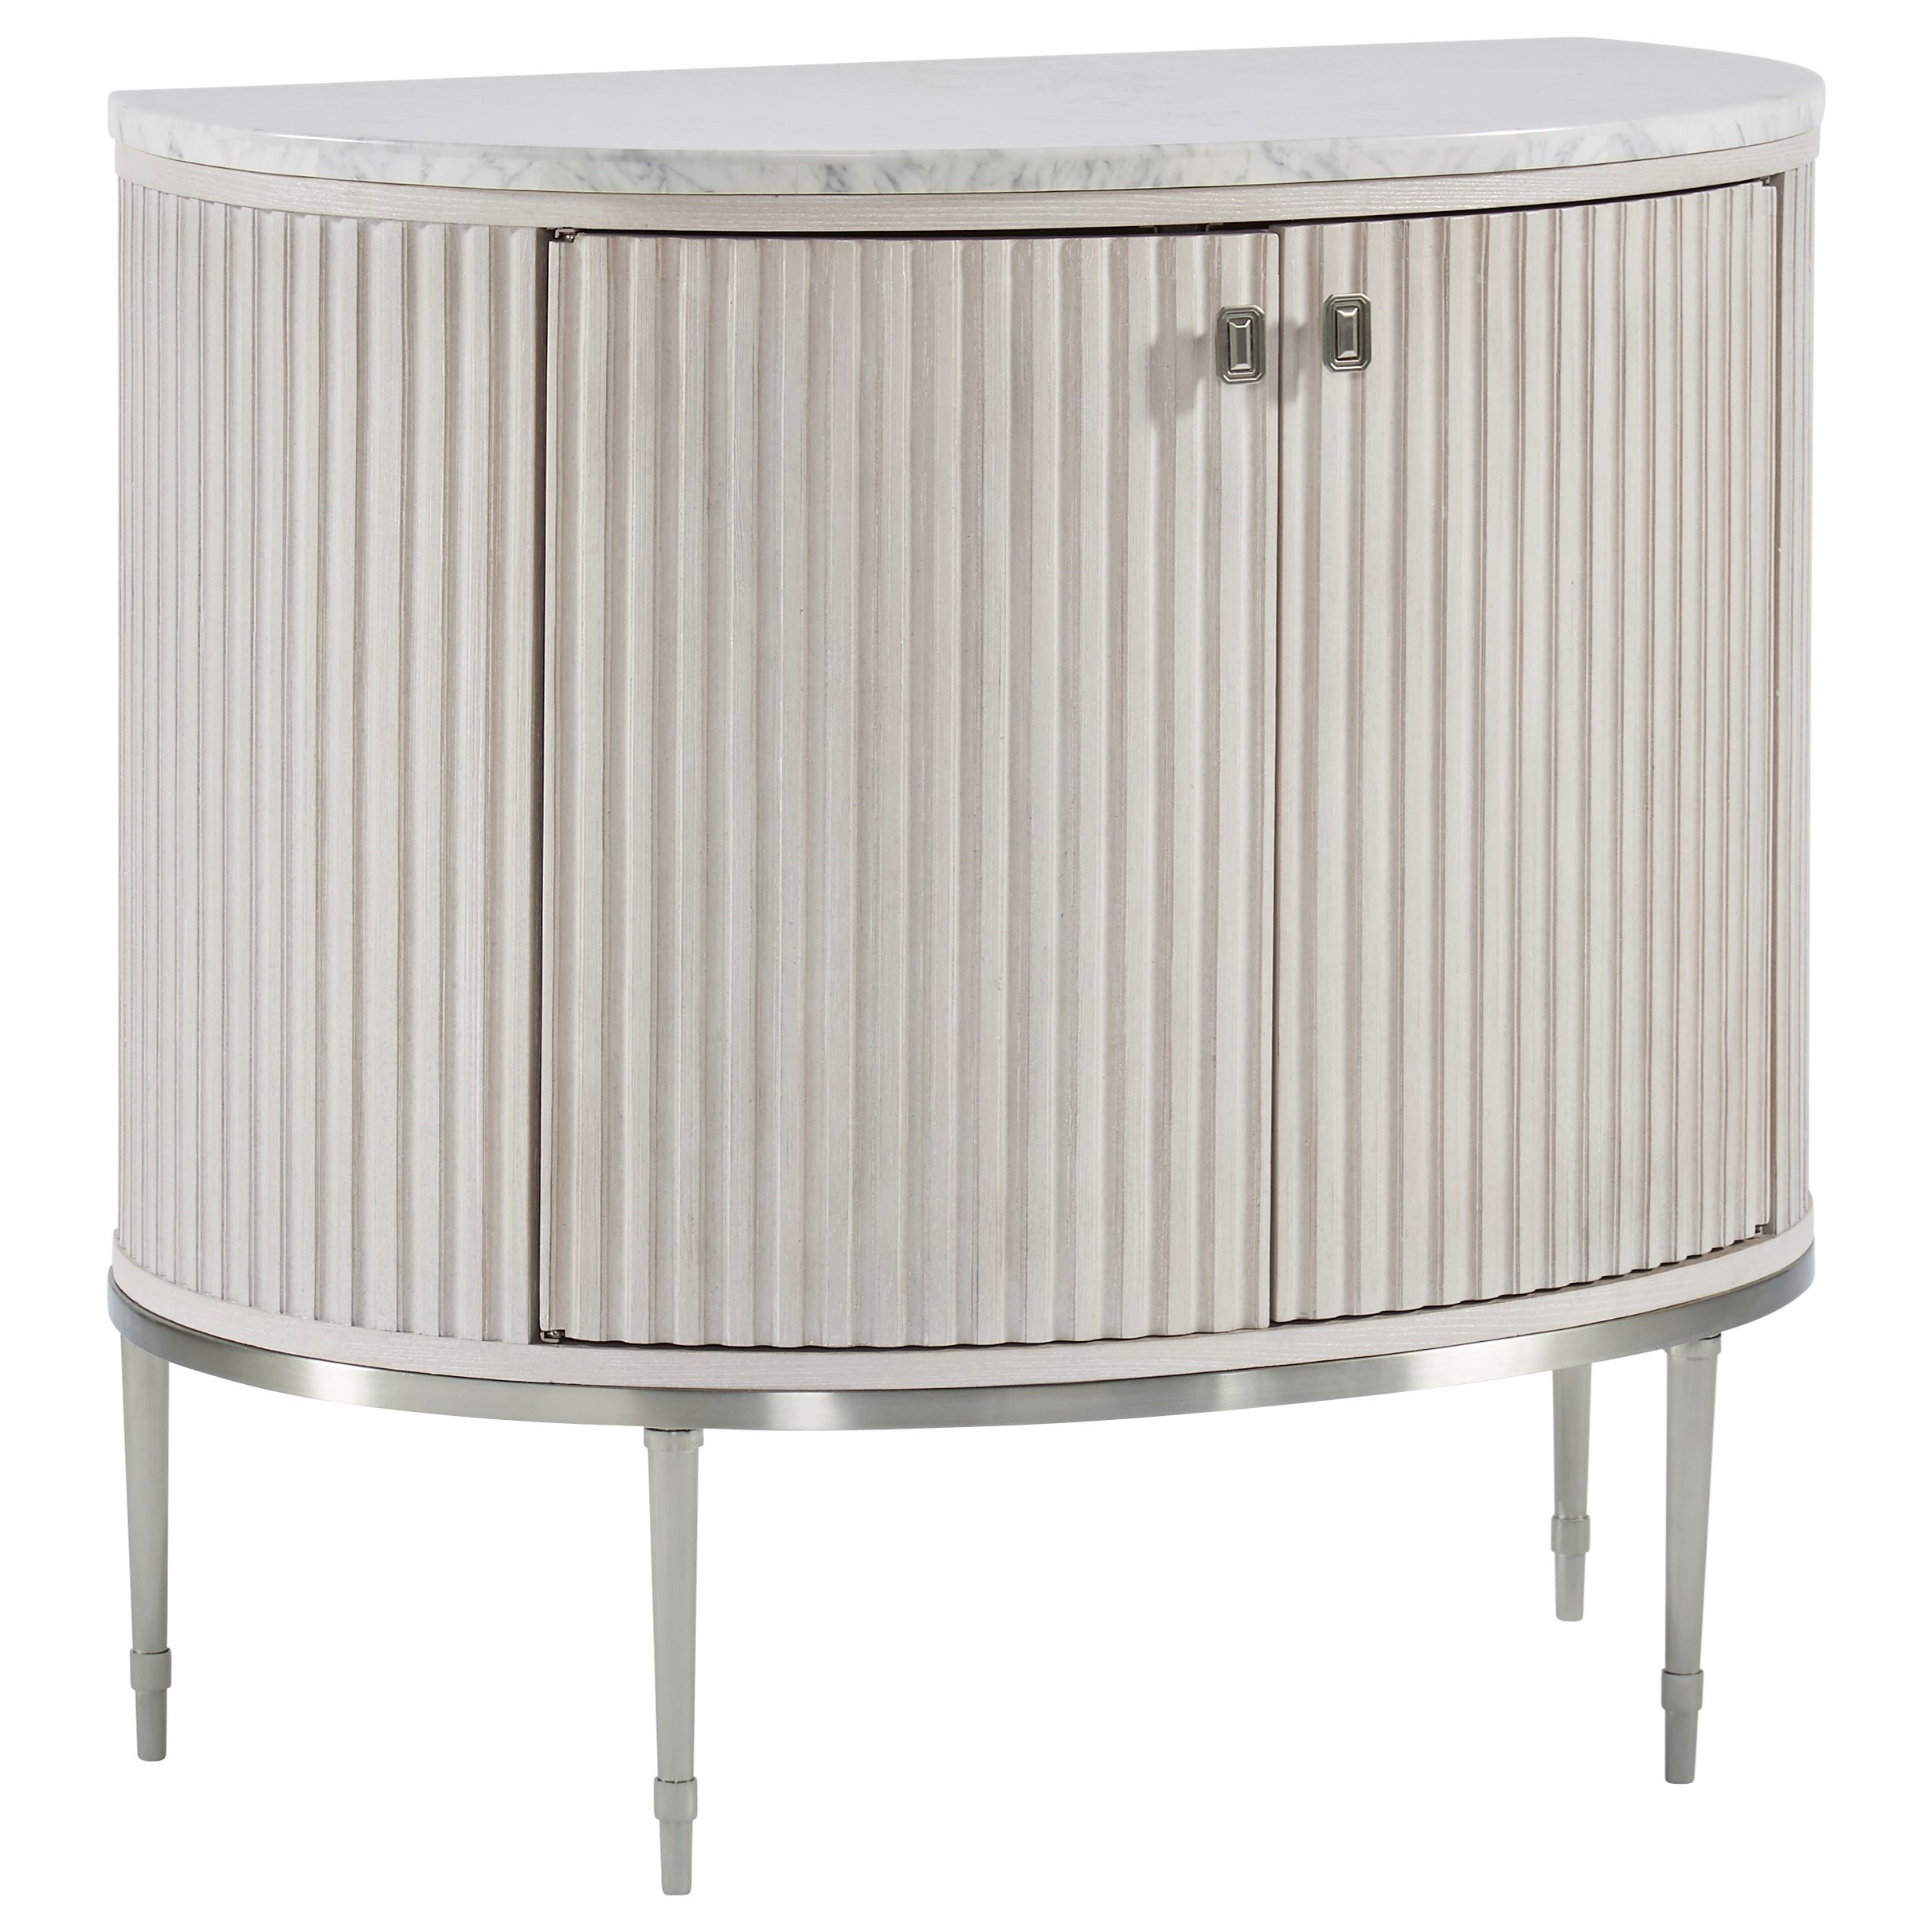 La Scala Door Chest by A.R.T. Furniture Inc at Michael Alan Furniture & Design